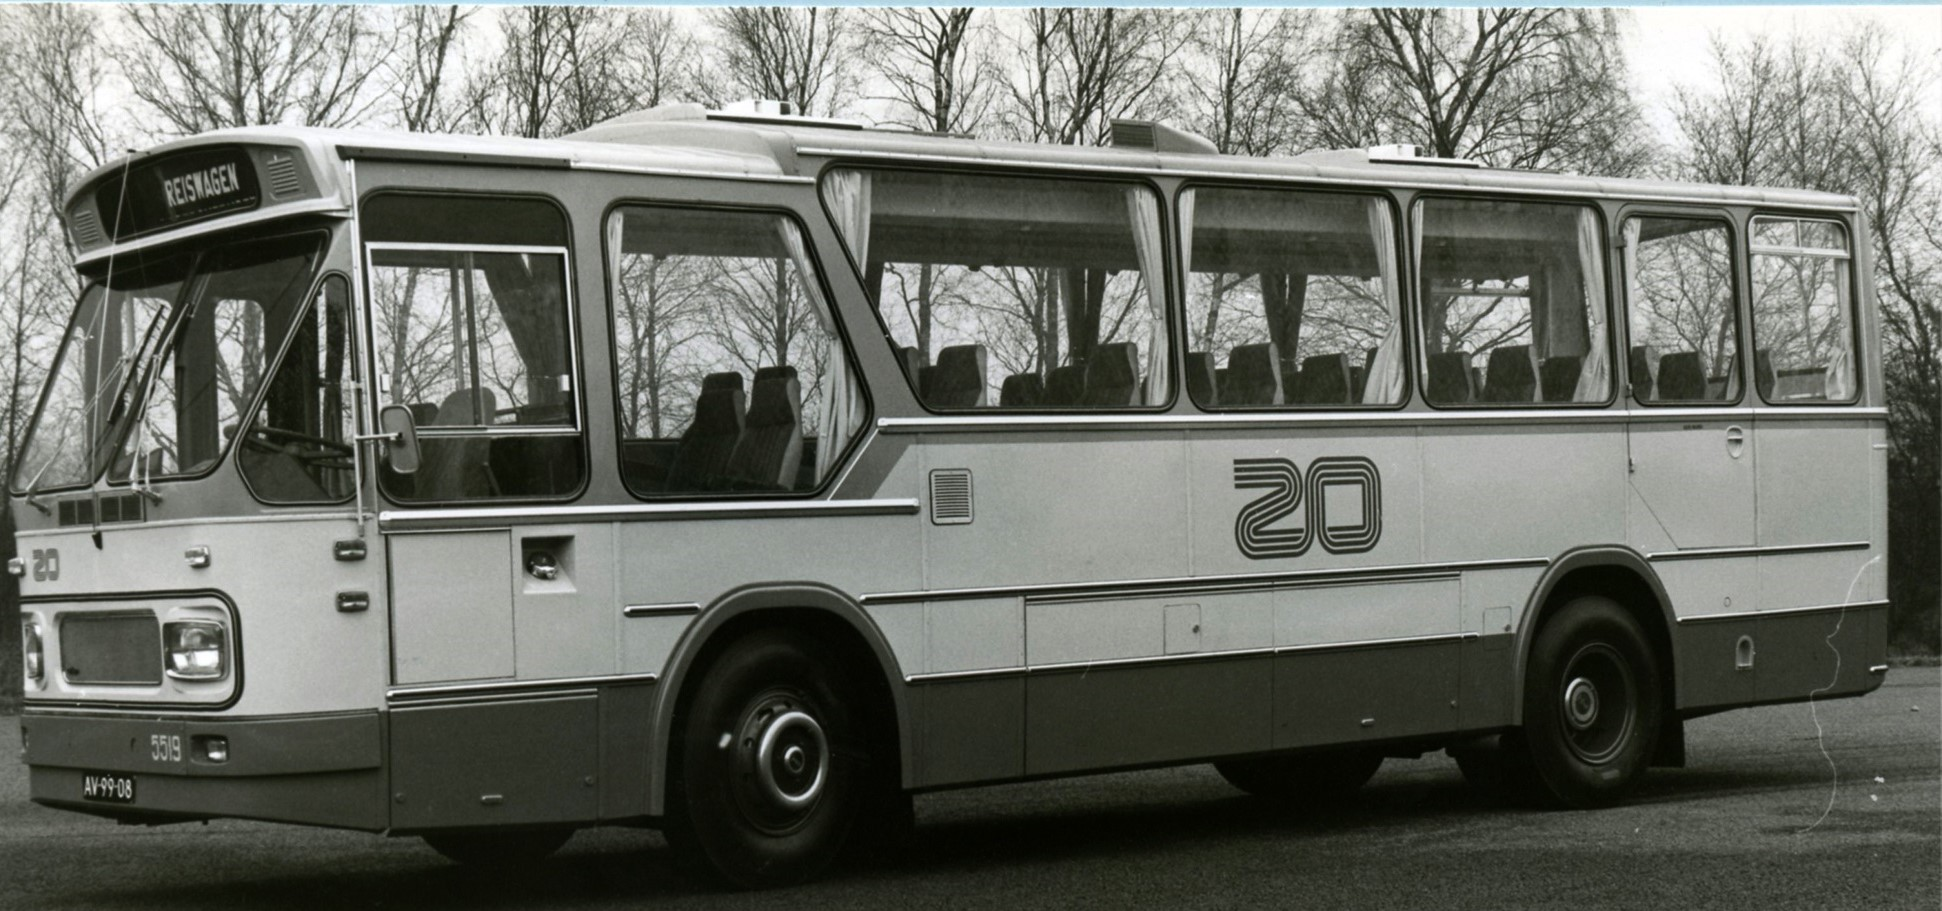 2932-Zuid-Ooster-2